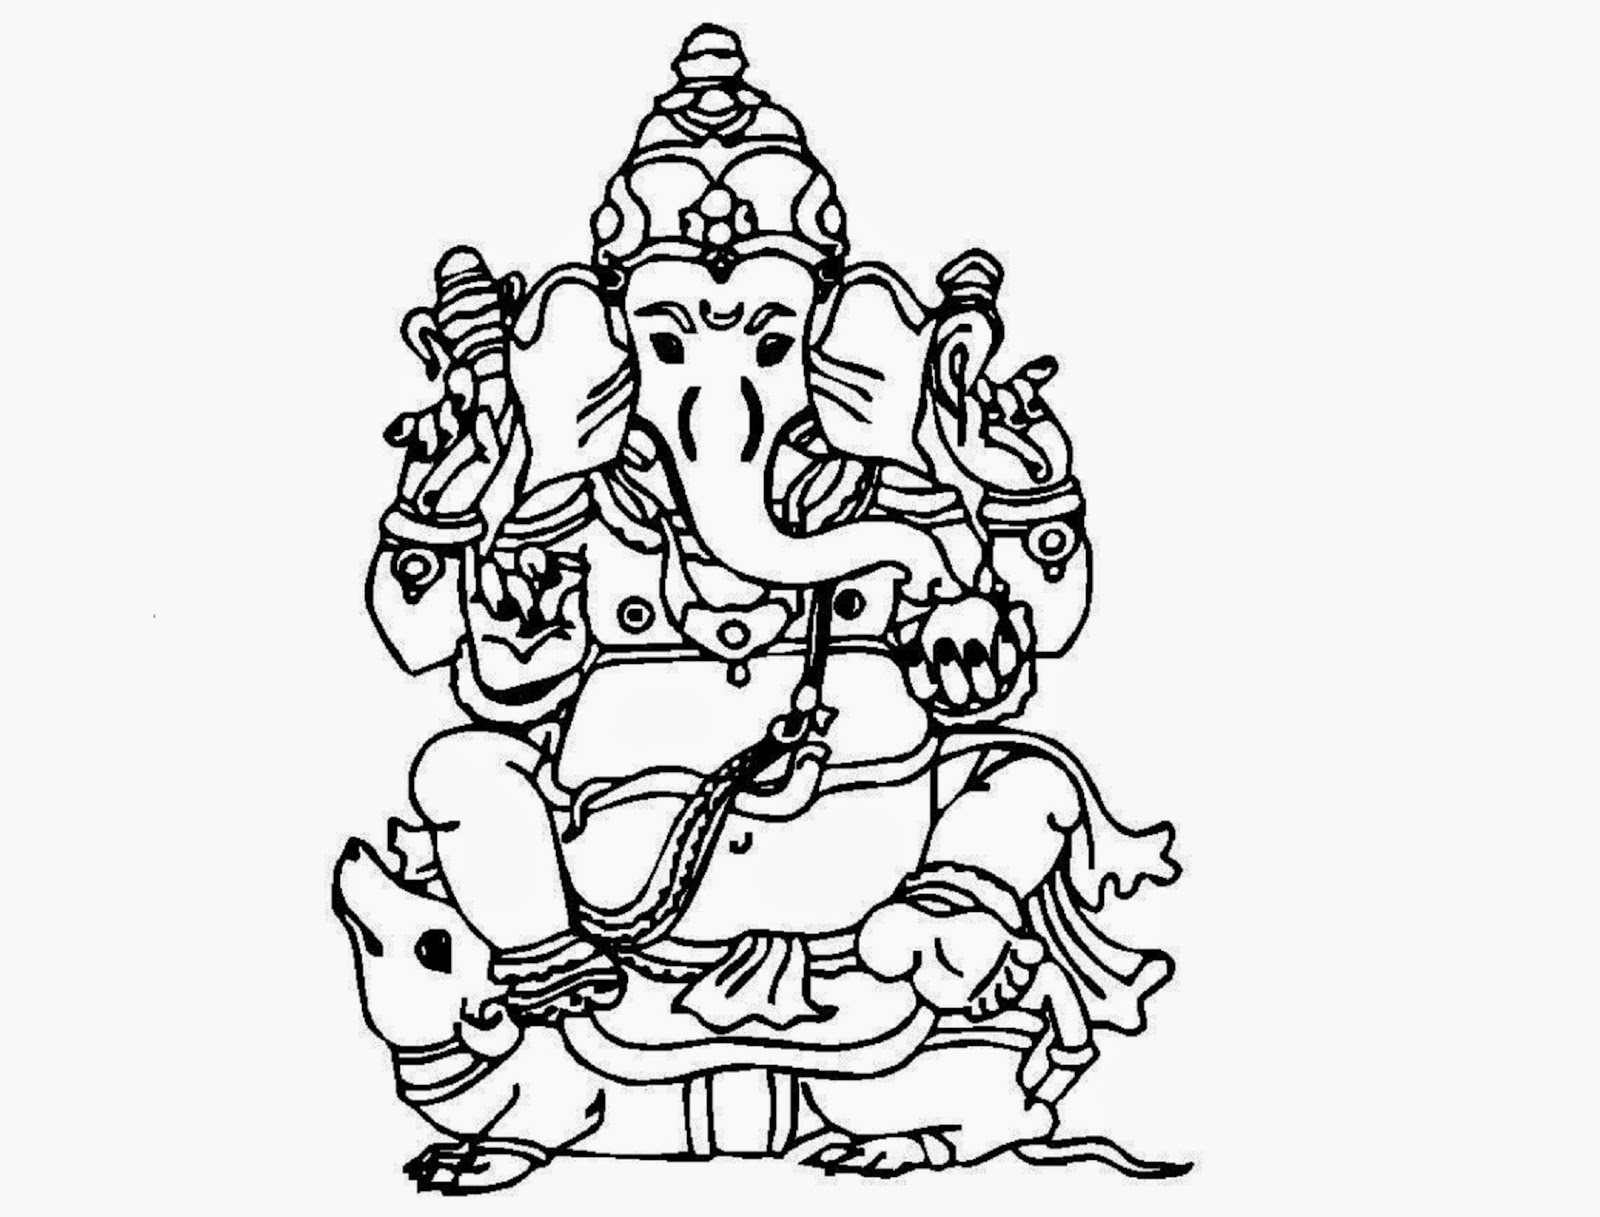 Lord Ganesh Drawing at GetDrawings.com | Free for personal use Lord ...